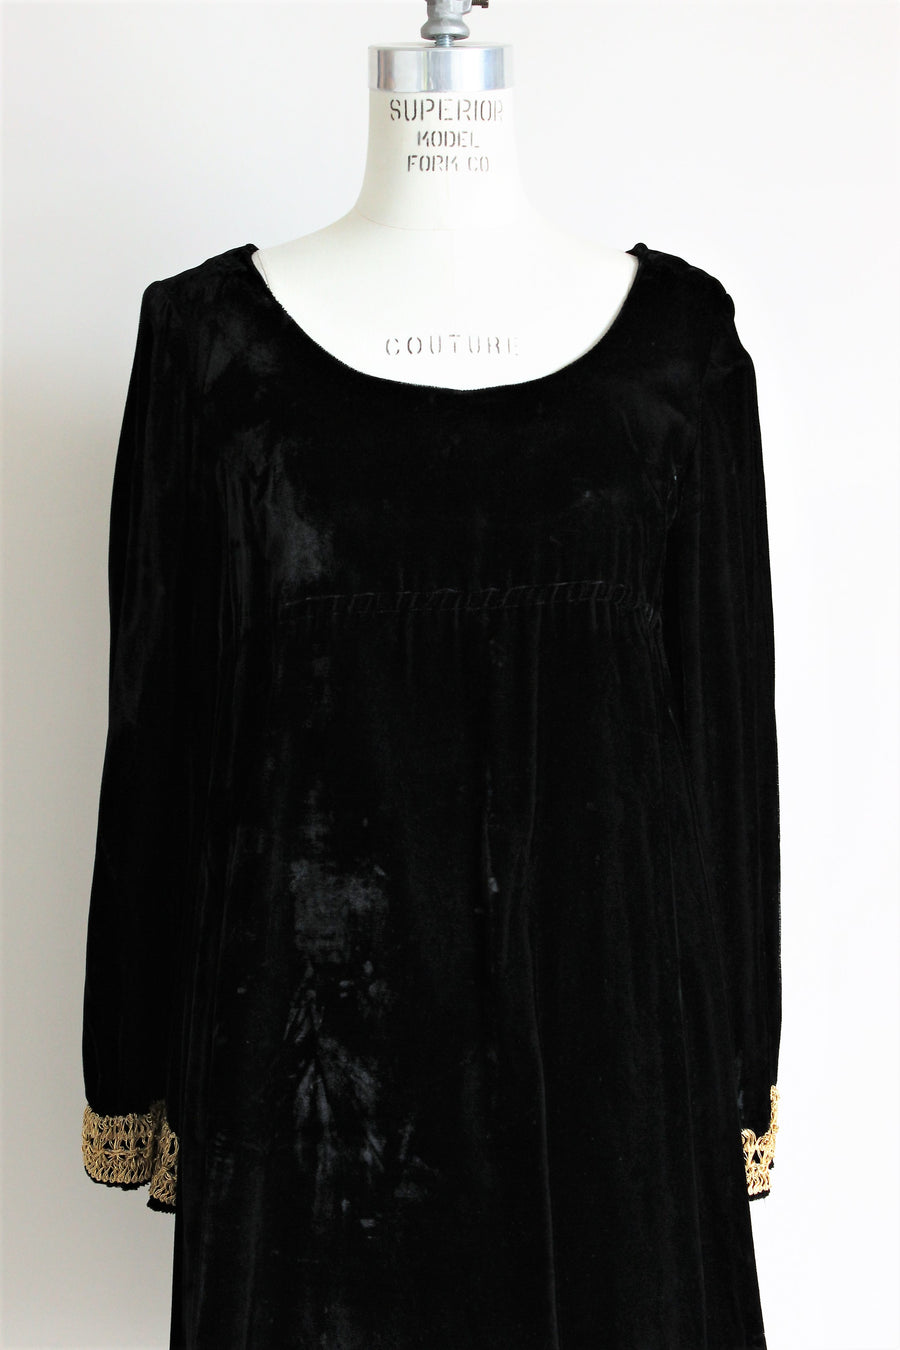 Vintage 1960s Black Velvet Mod Dress